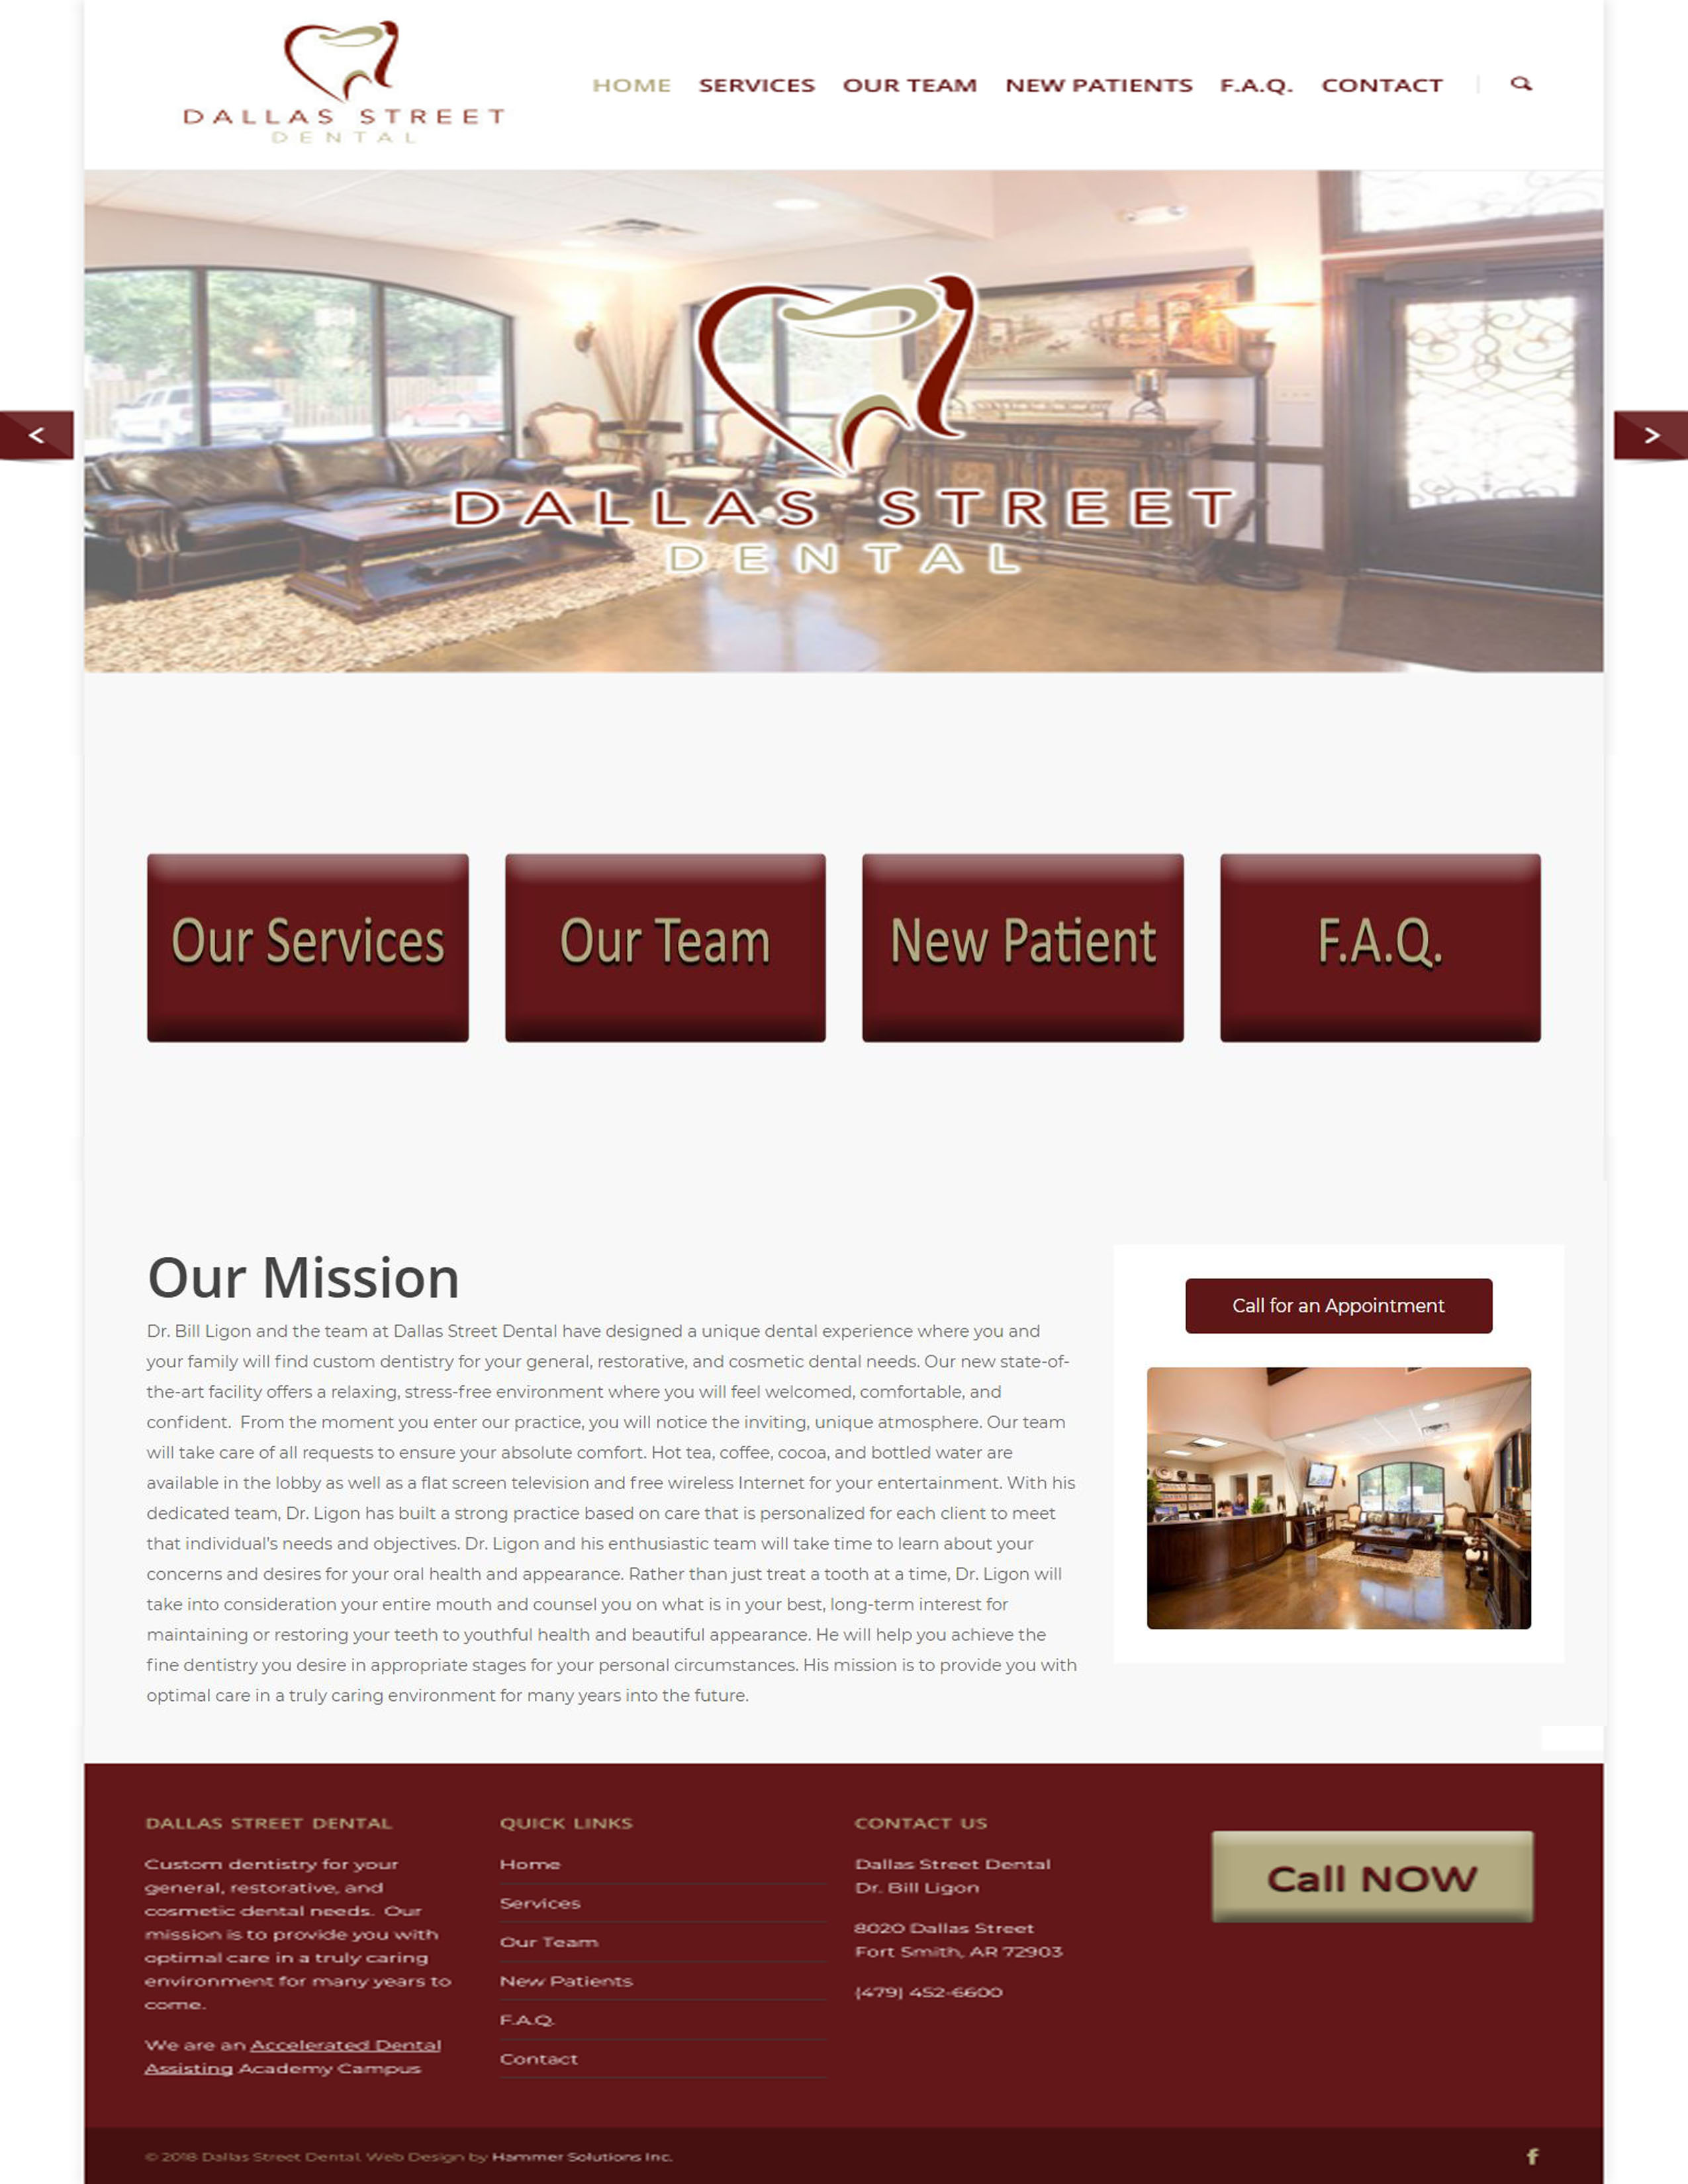 Dallas Street Dental Fort Smith Arkansas Hammer Solutions Website Design Web Design Web Development